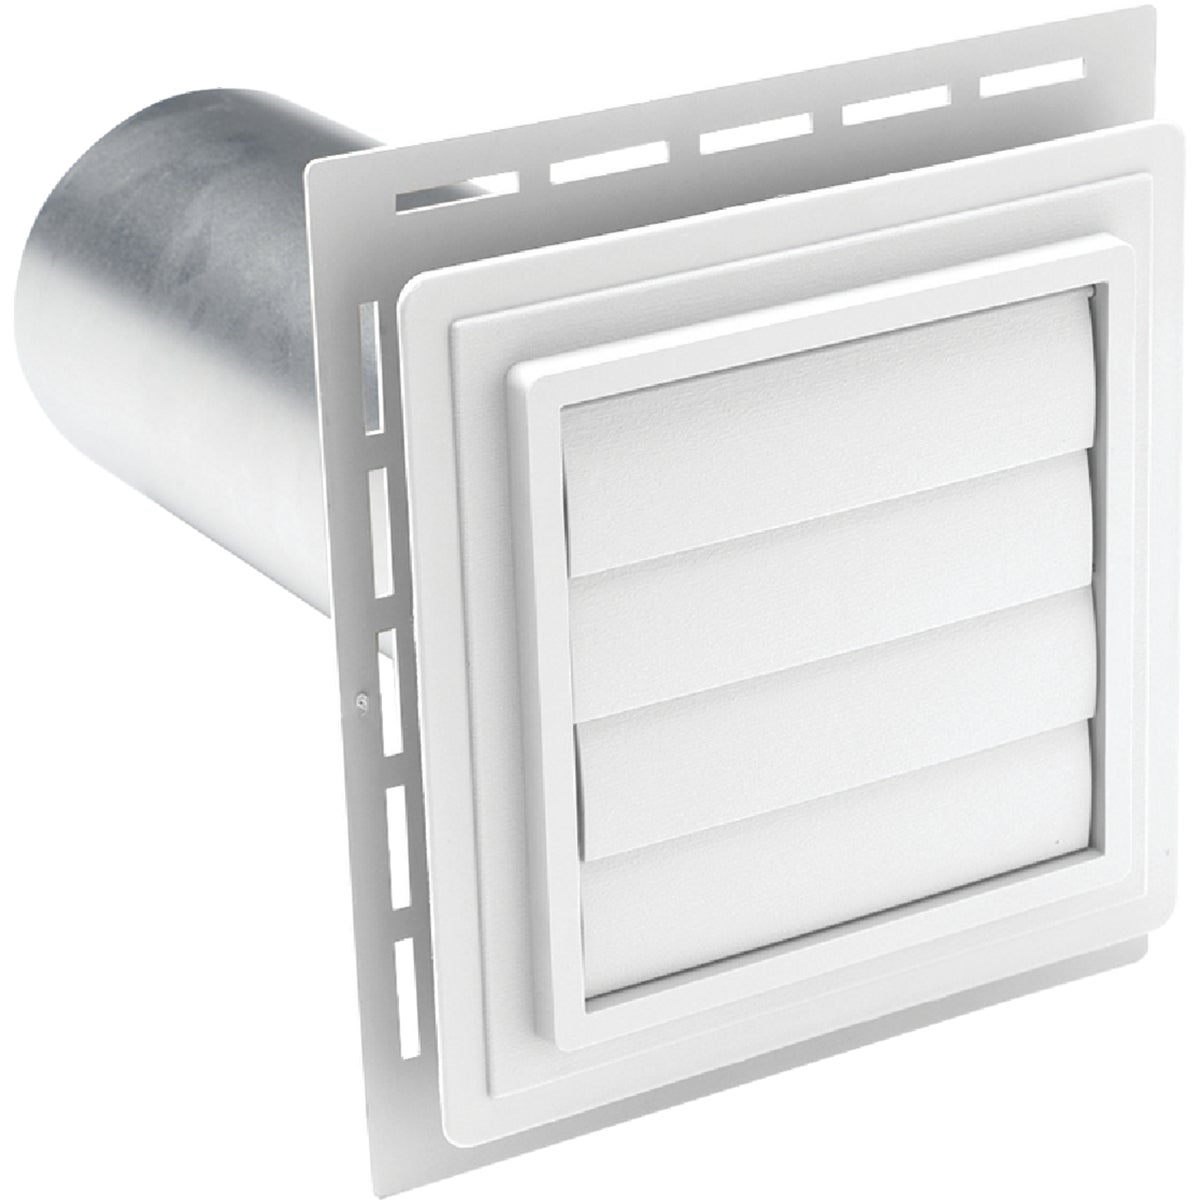 WHITE EXHAUST VENT - EXVENT PW by Alcoa Home Exteriors